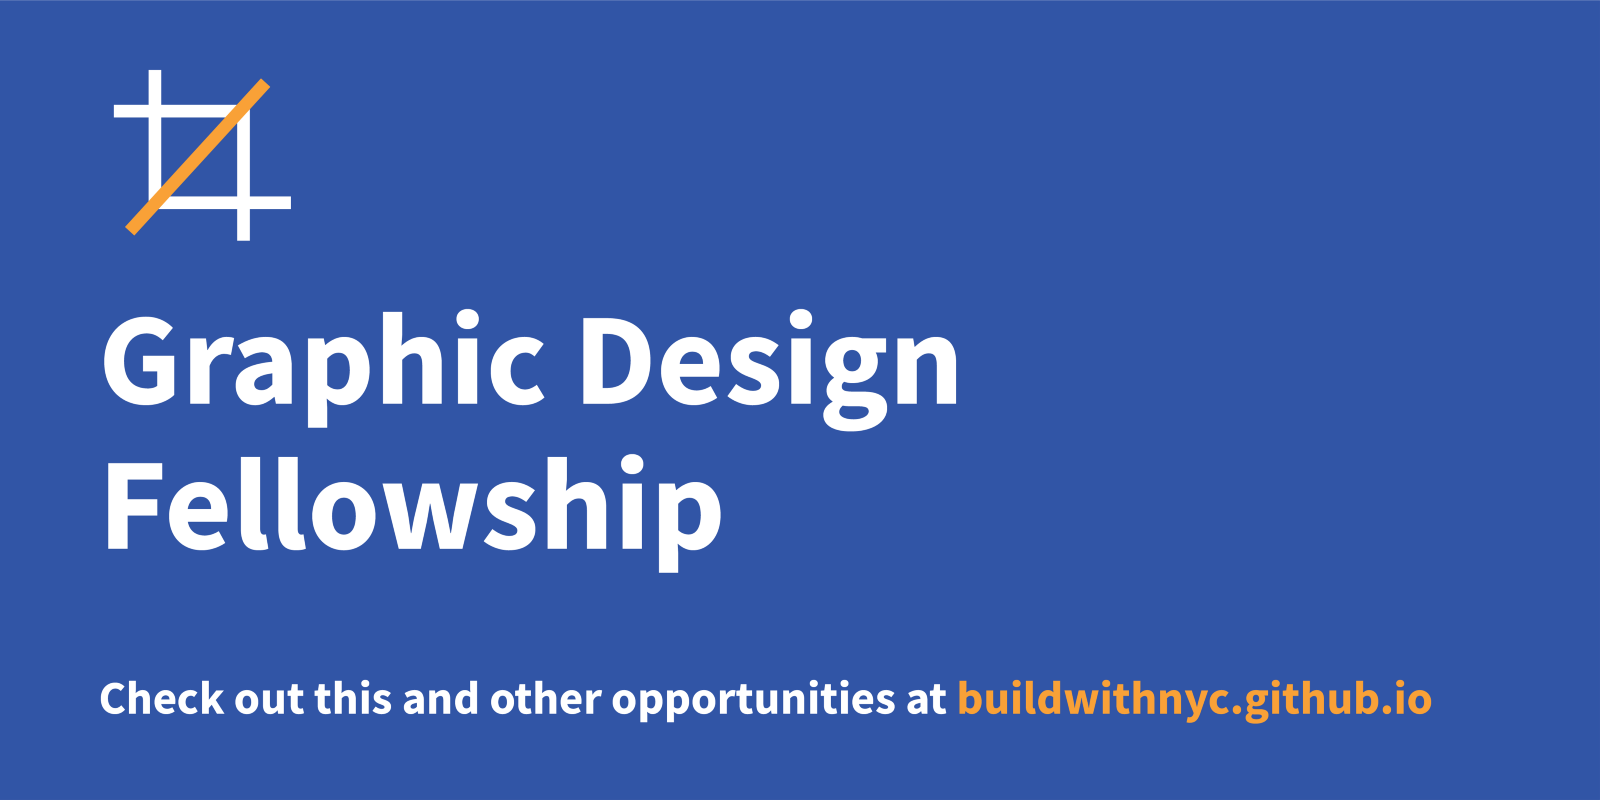 9366ee33eacb0 The Service Design Studio is looking for a Graphic Design Fellow and a  Graphic Design Apprentice. Bring your visual design skills to our team for  the chance ...